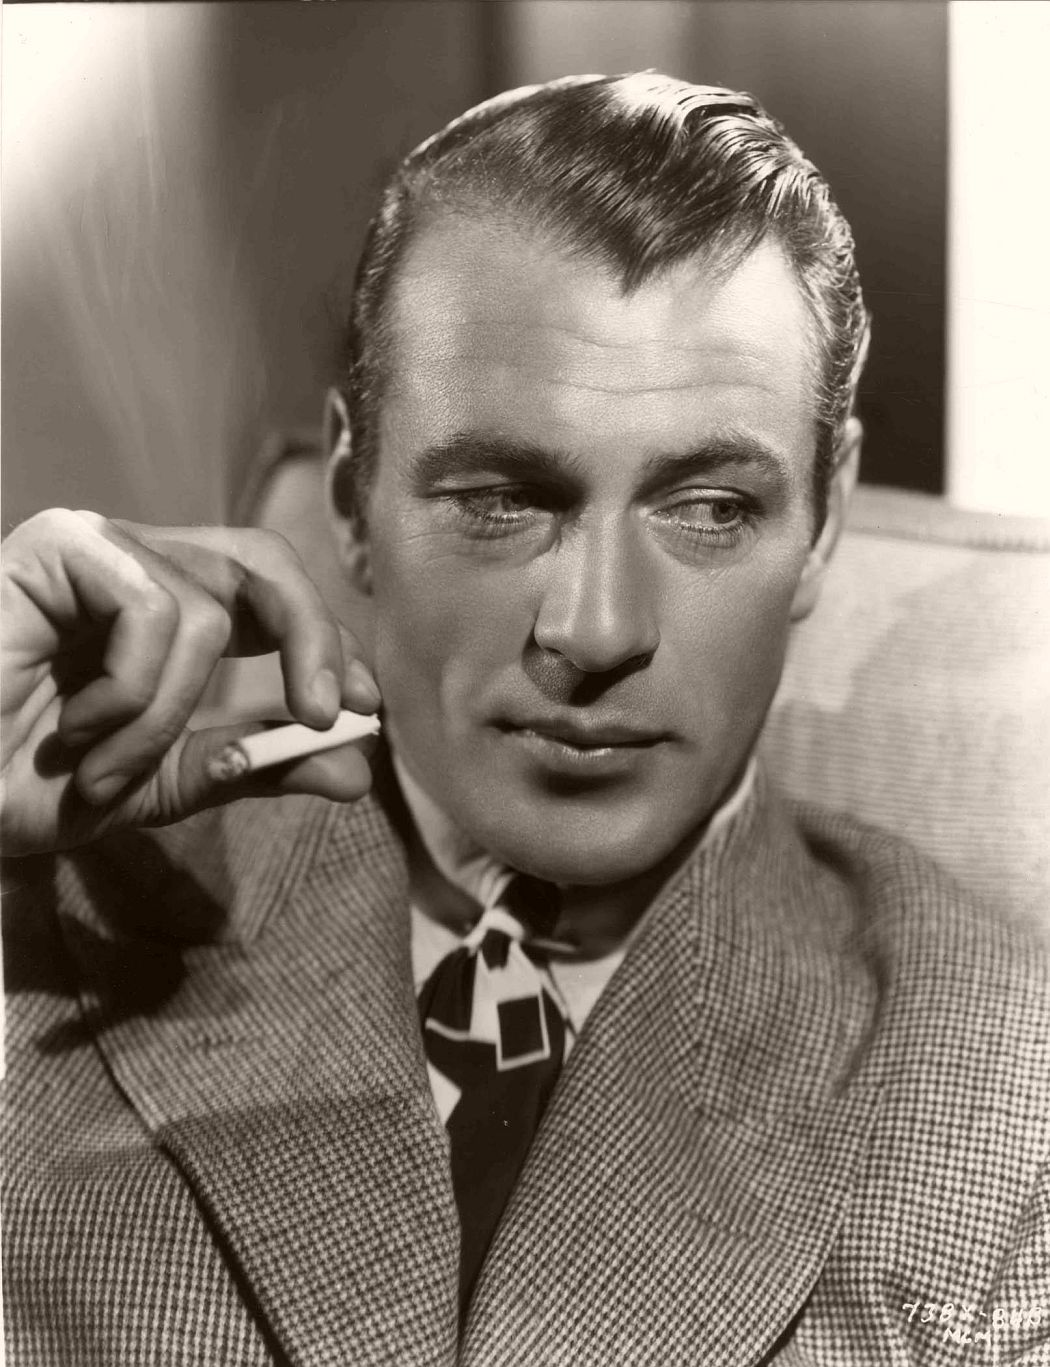 Vintage: 1930s American Hollywood Actors Portraits ...